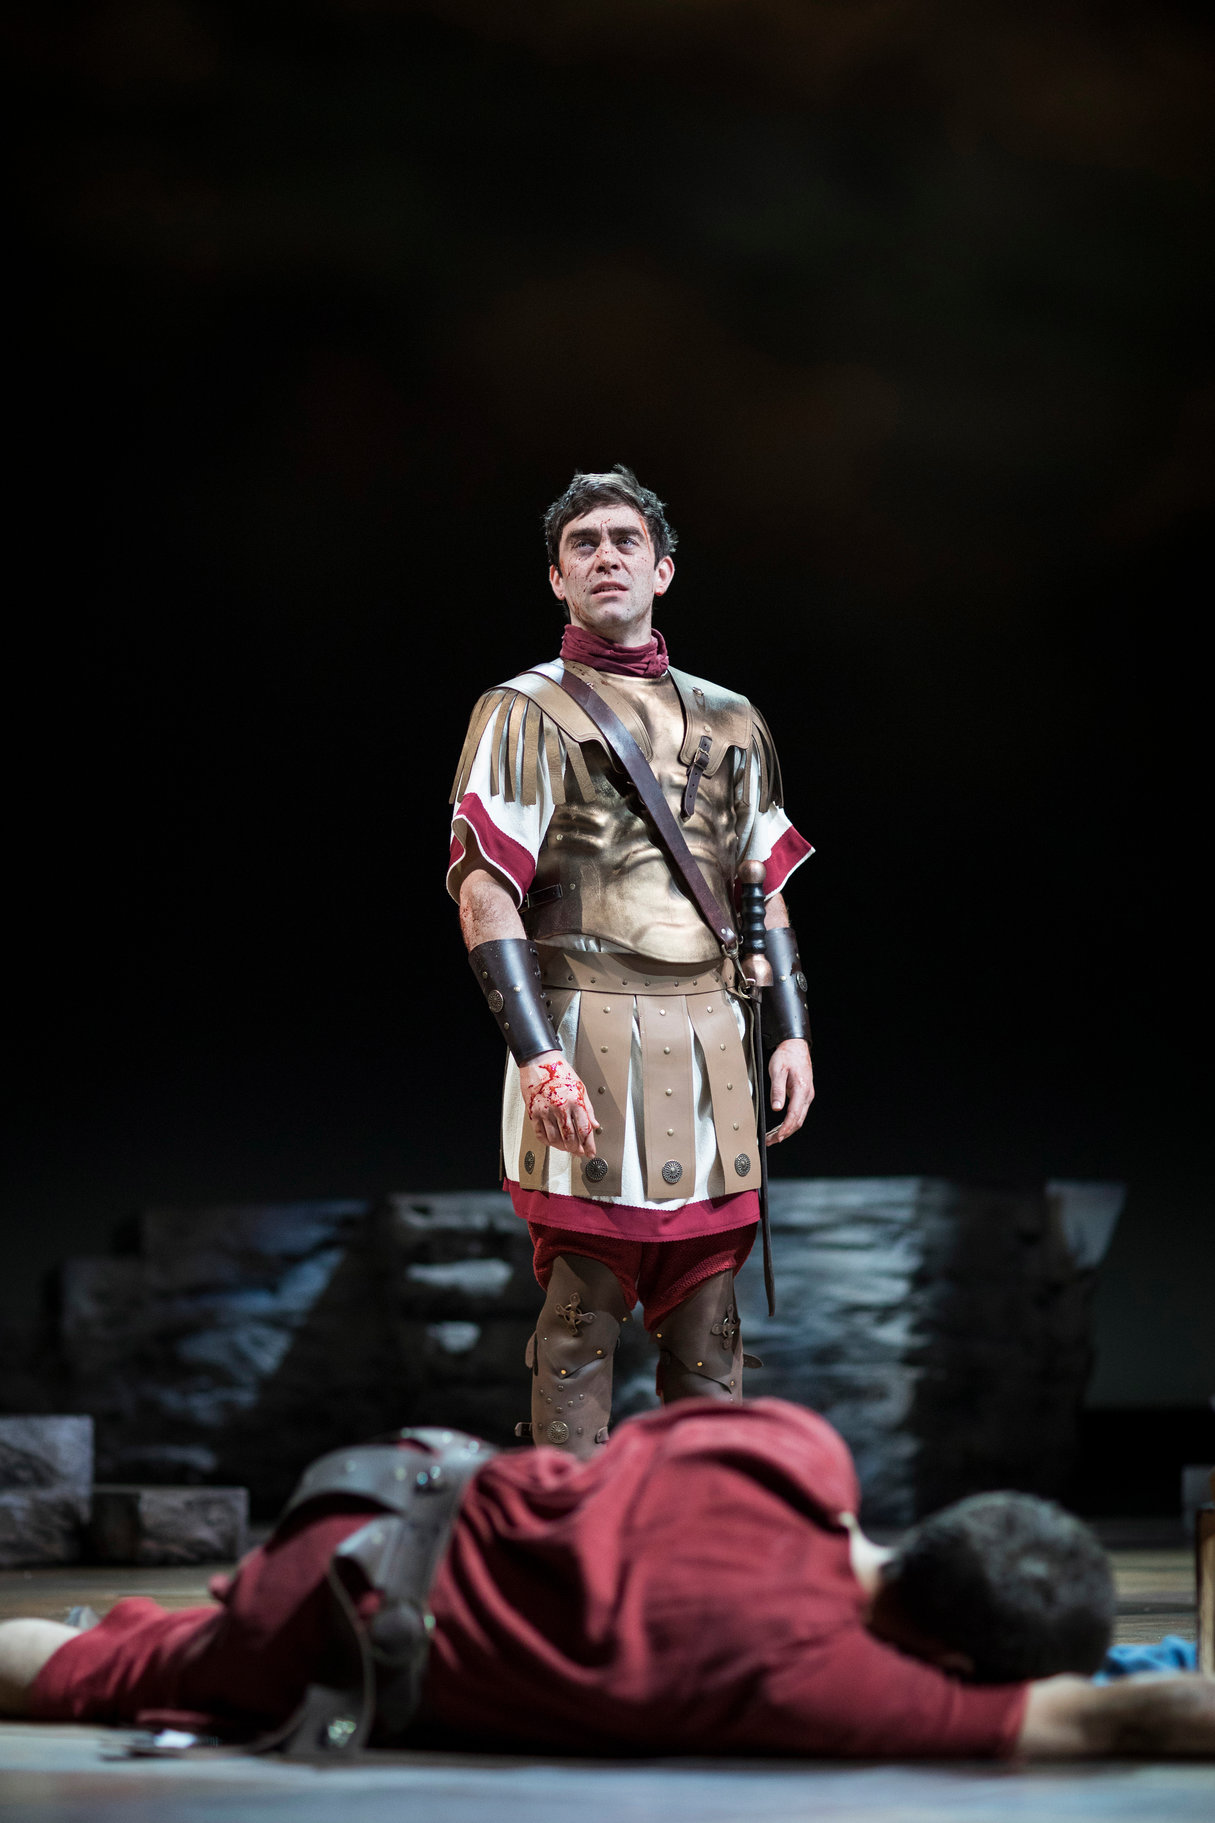 Mark Antony dressed in uniform stands over the dead body of Brutus in the 2017 production of Julius Caesar.